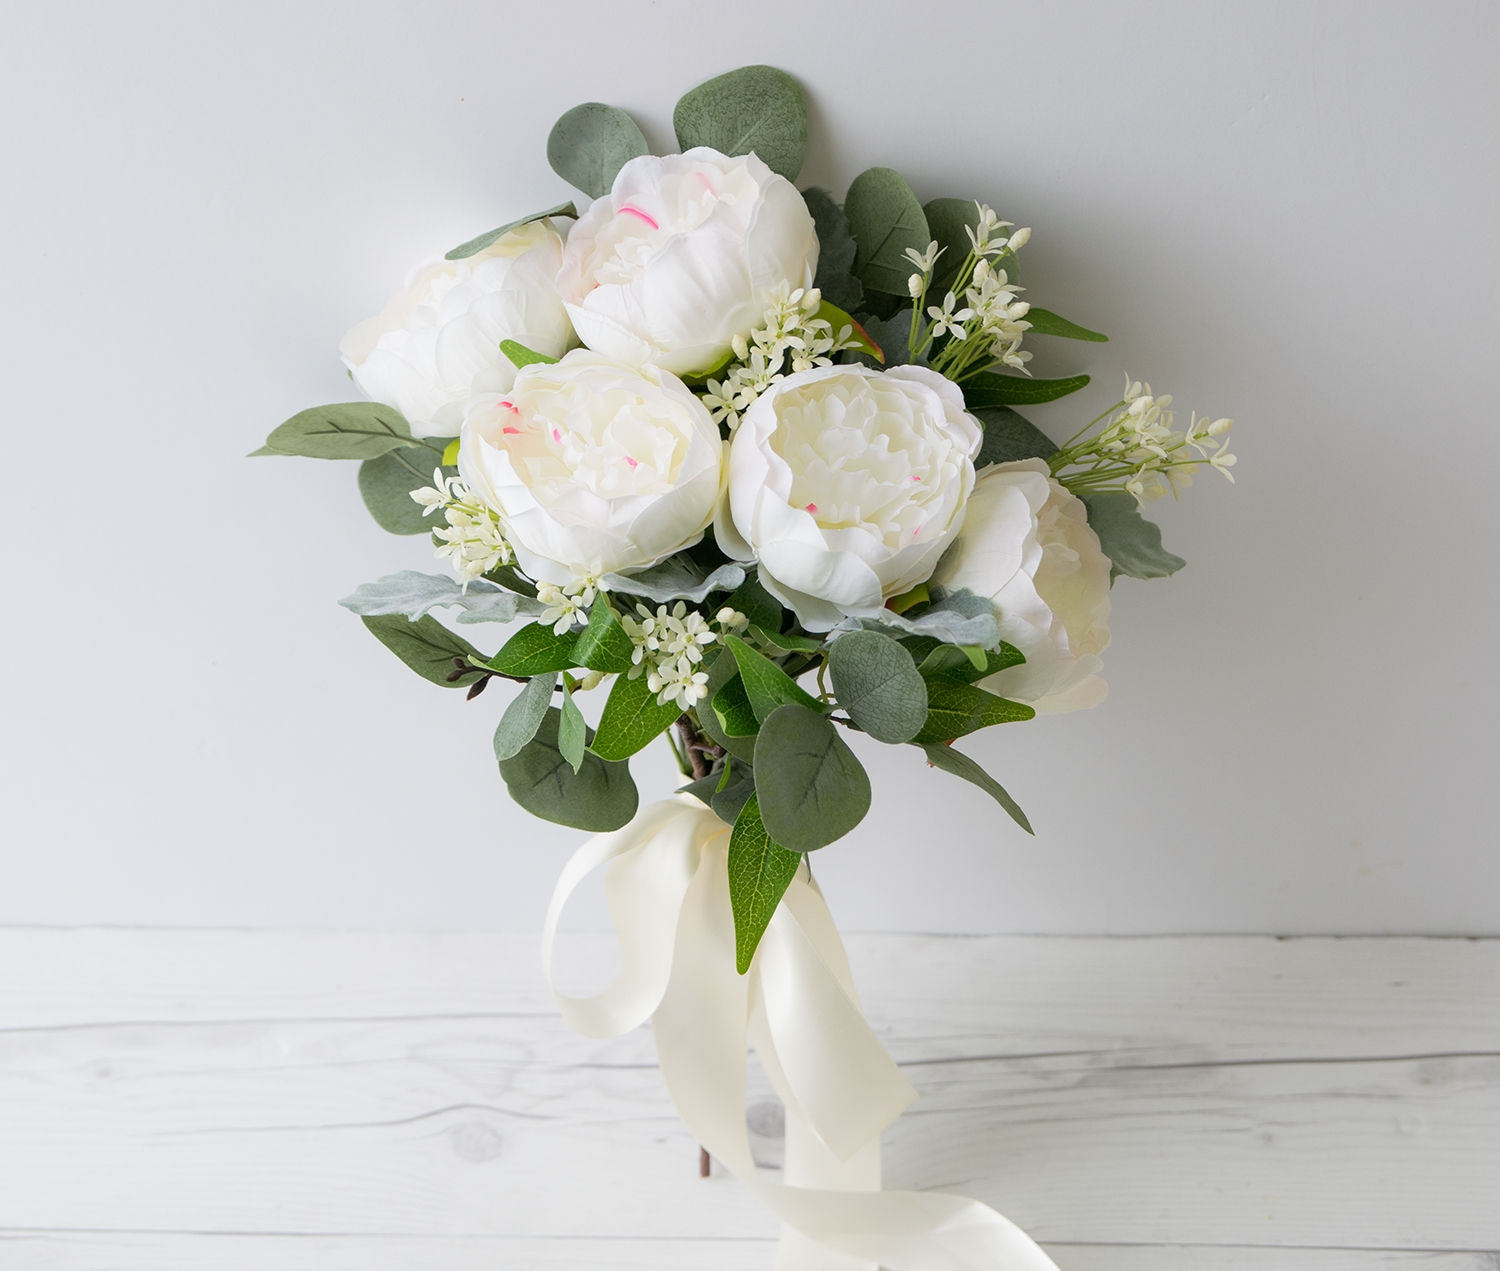 White and Cream Silk Wedding Peony Bouquet - The best silk faux Flowers